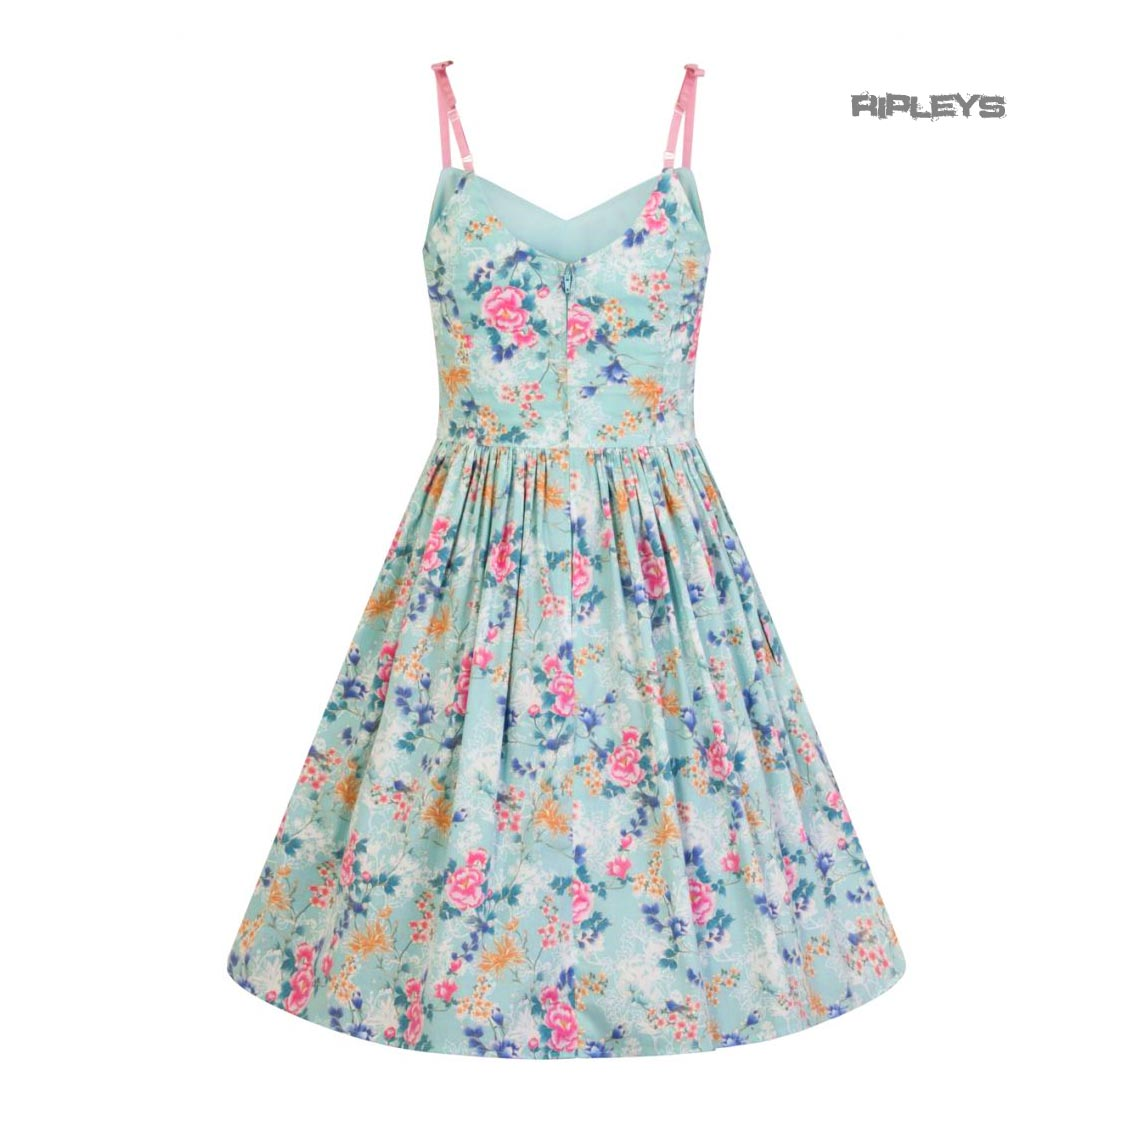 Hell-Bunny-50s-Mid-Length-Dress-Vintage-Blue-Pink-SAKURA-Flowers-Roses-All-Sizes thumbnail 24